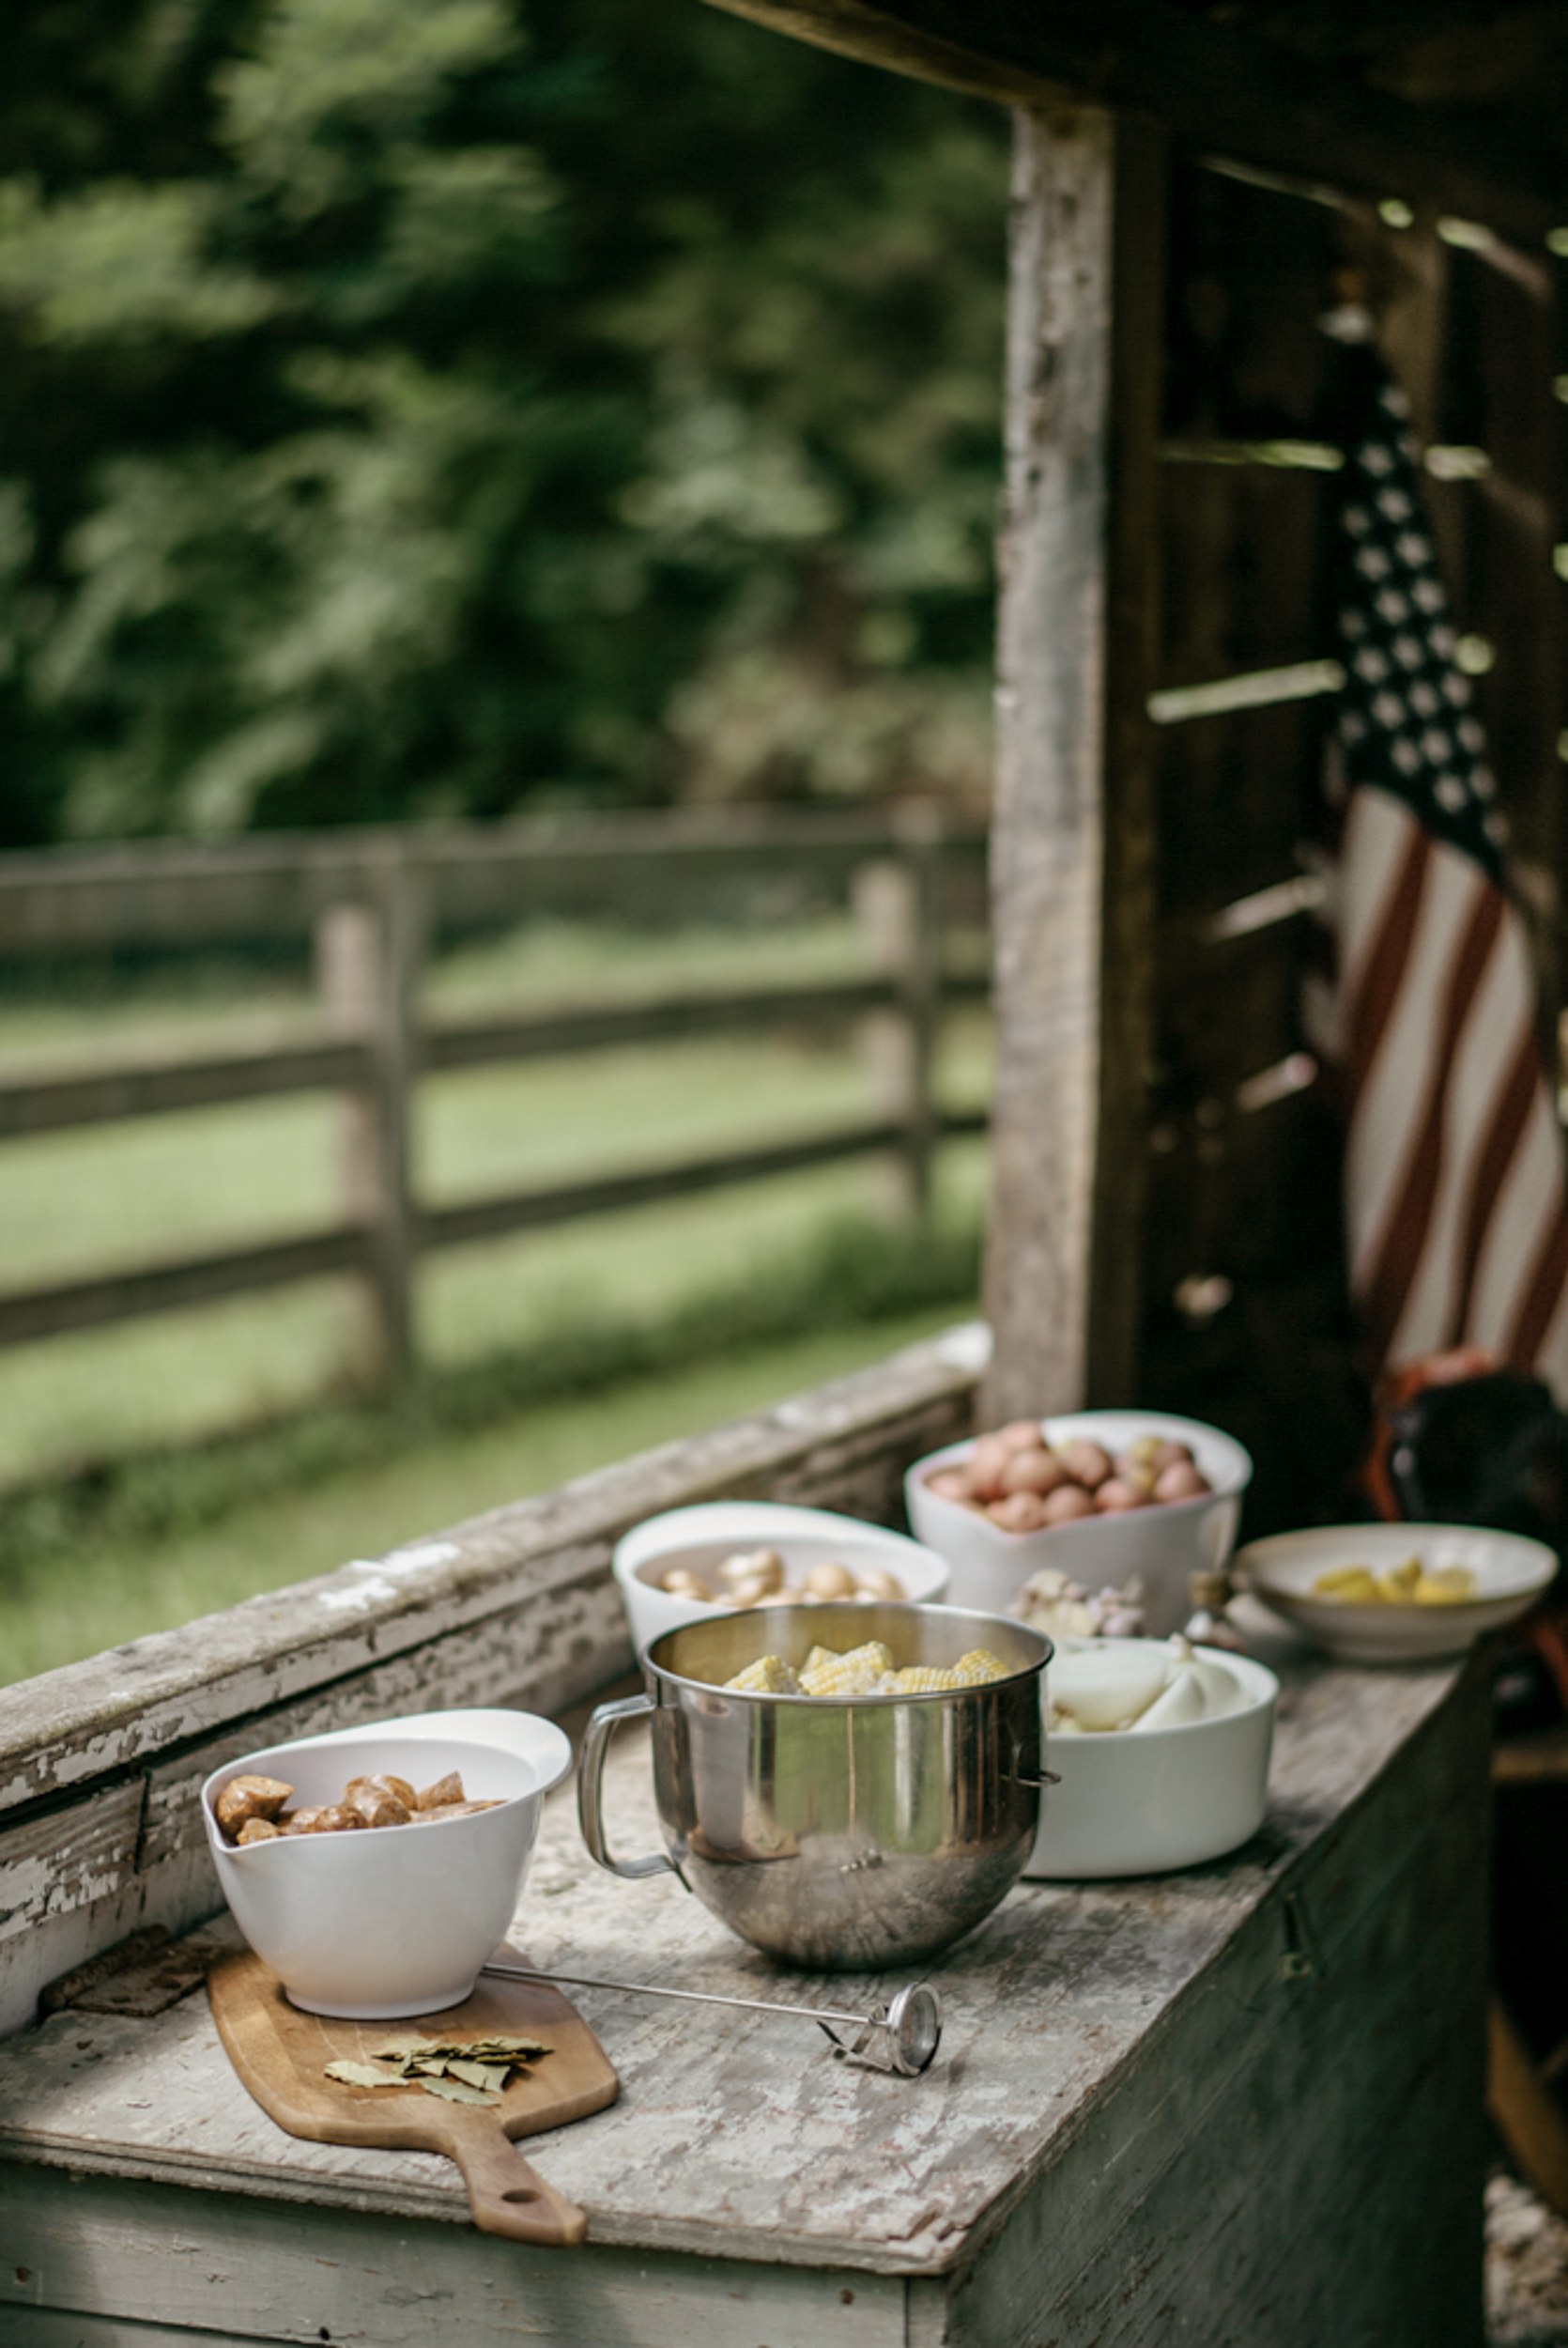 117-mayker-creative-crawfish-boil-summer-party-ideas-rentals-nashville-design-tips-hosting-entertaining-Fox-Country-Farmhouse-Fourth-of-July.jpg